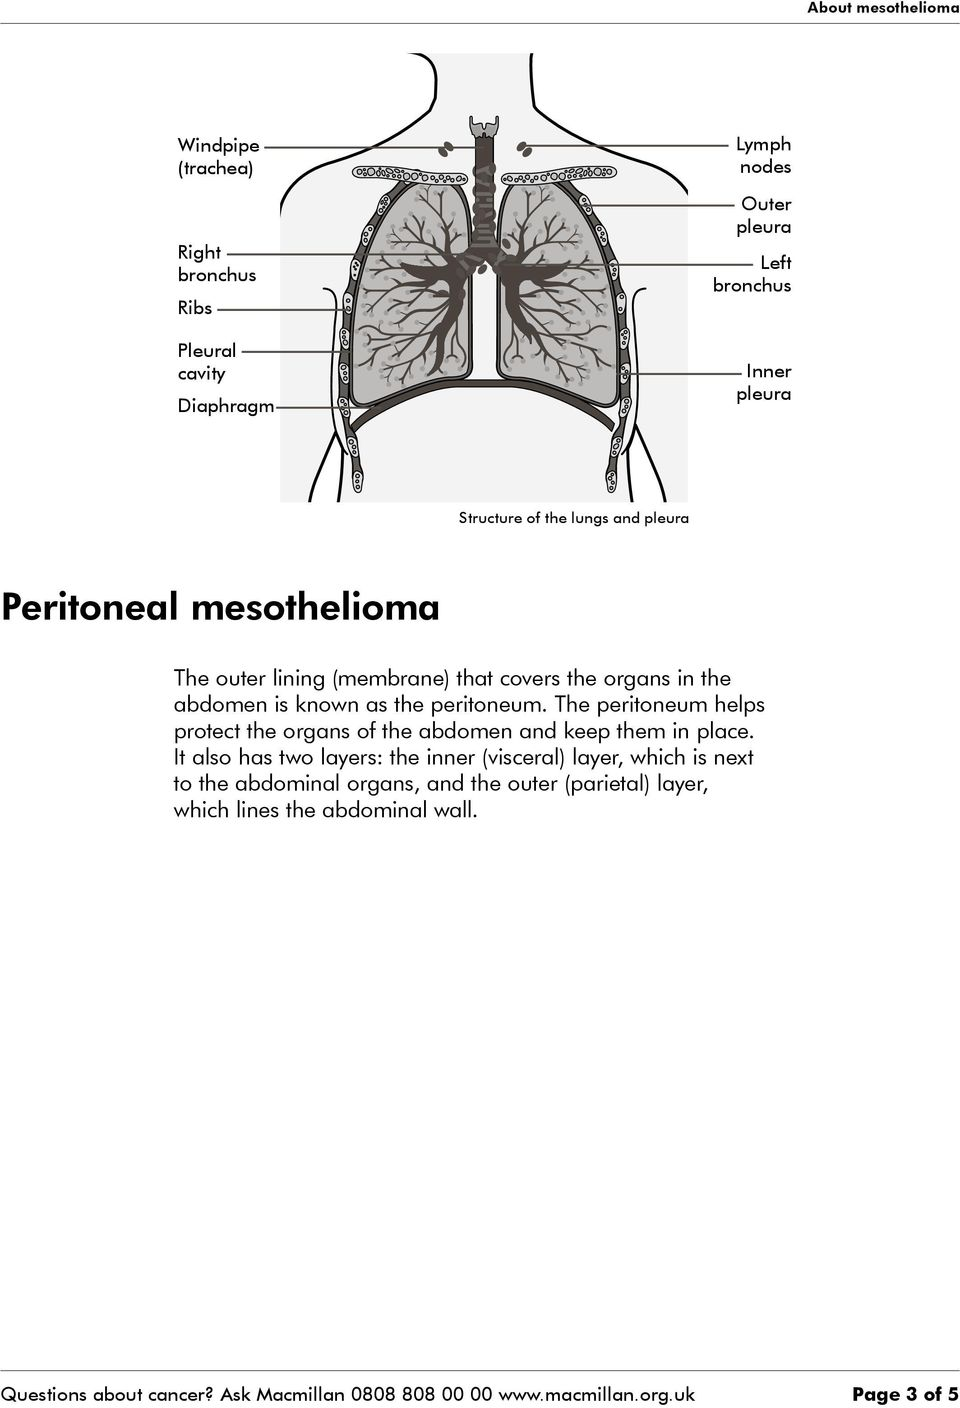 The peritoneum helps protect the organs of the abdomen and keep them in place.